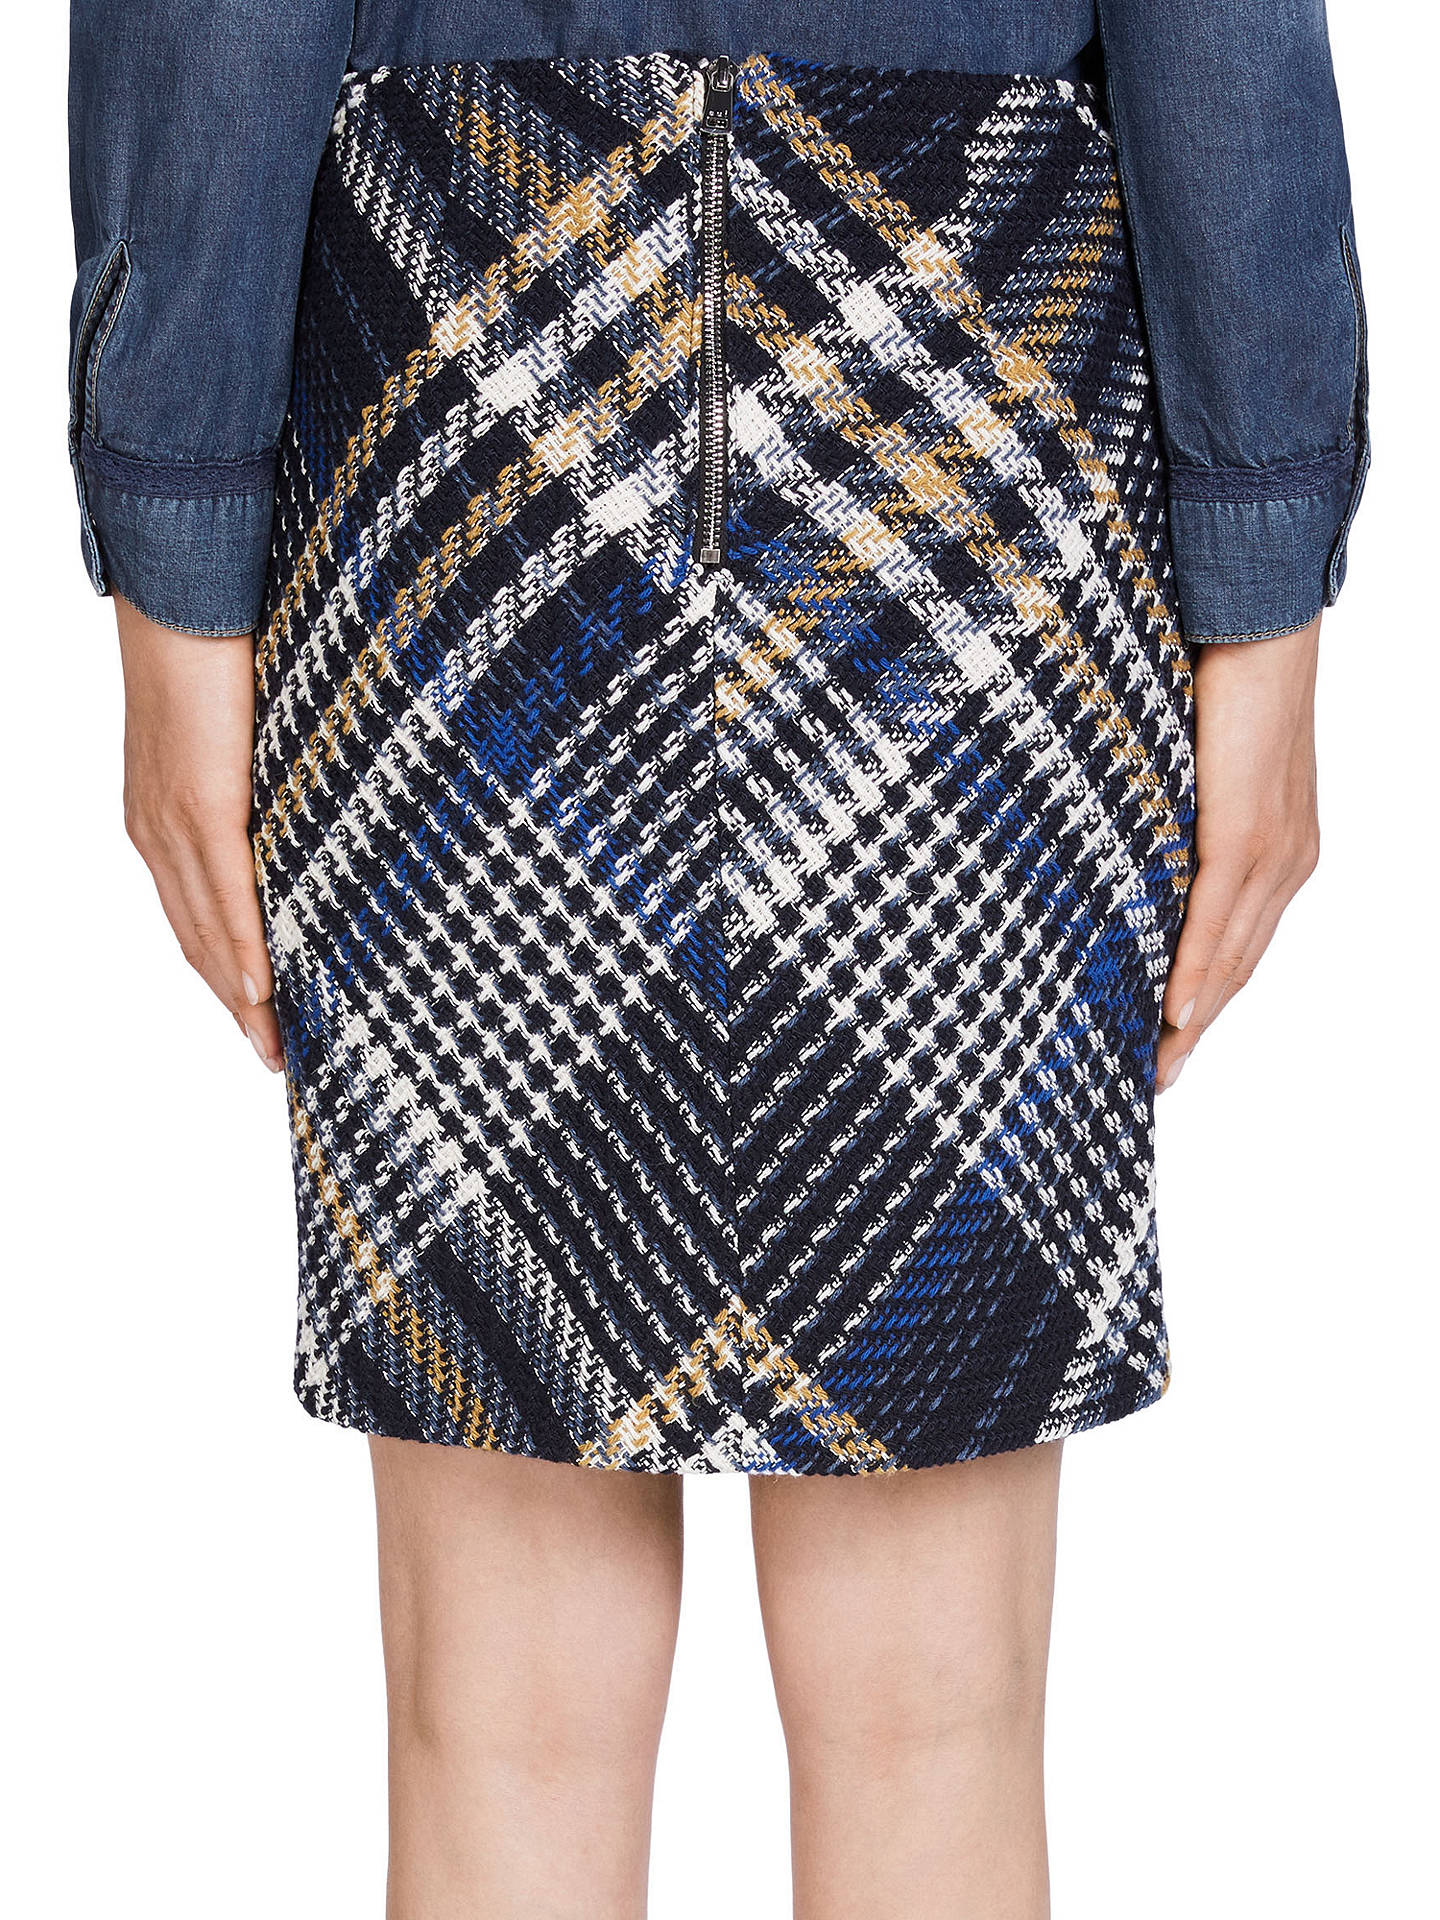 Buy Oui Check Tweed Skirt, Dark Blue/Grey, 8 Online at johnlewis.com